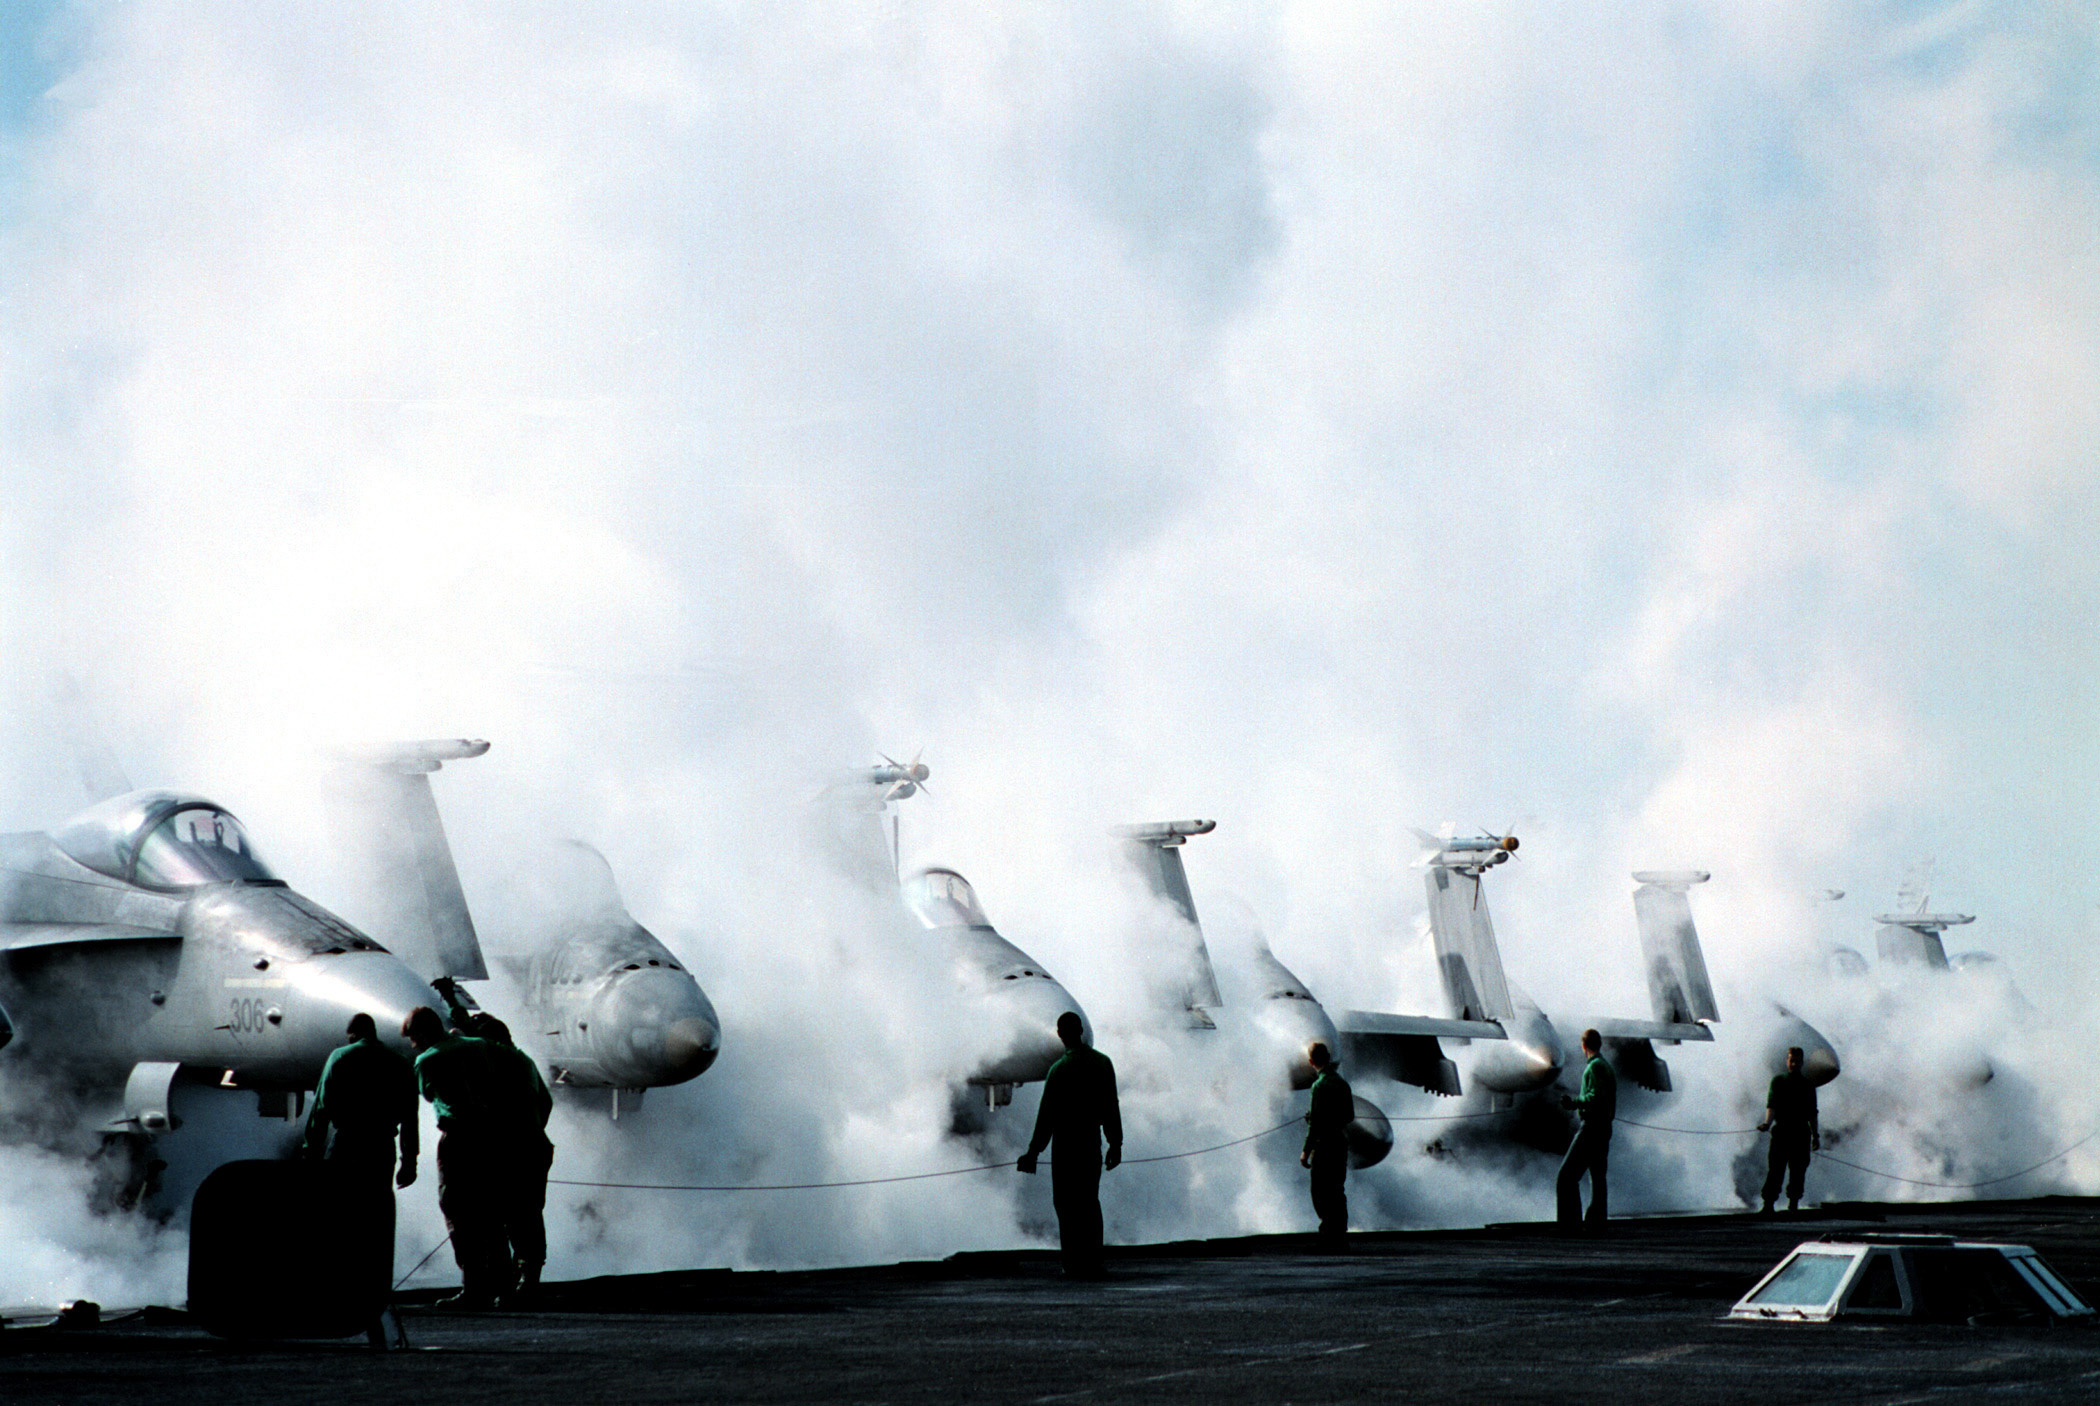 steamy launch deck